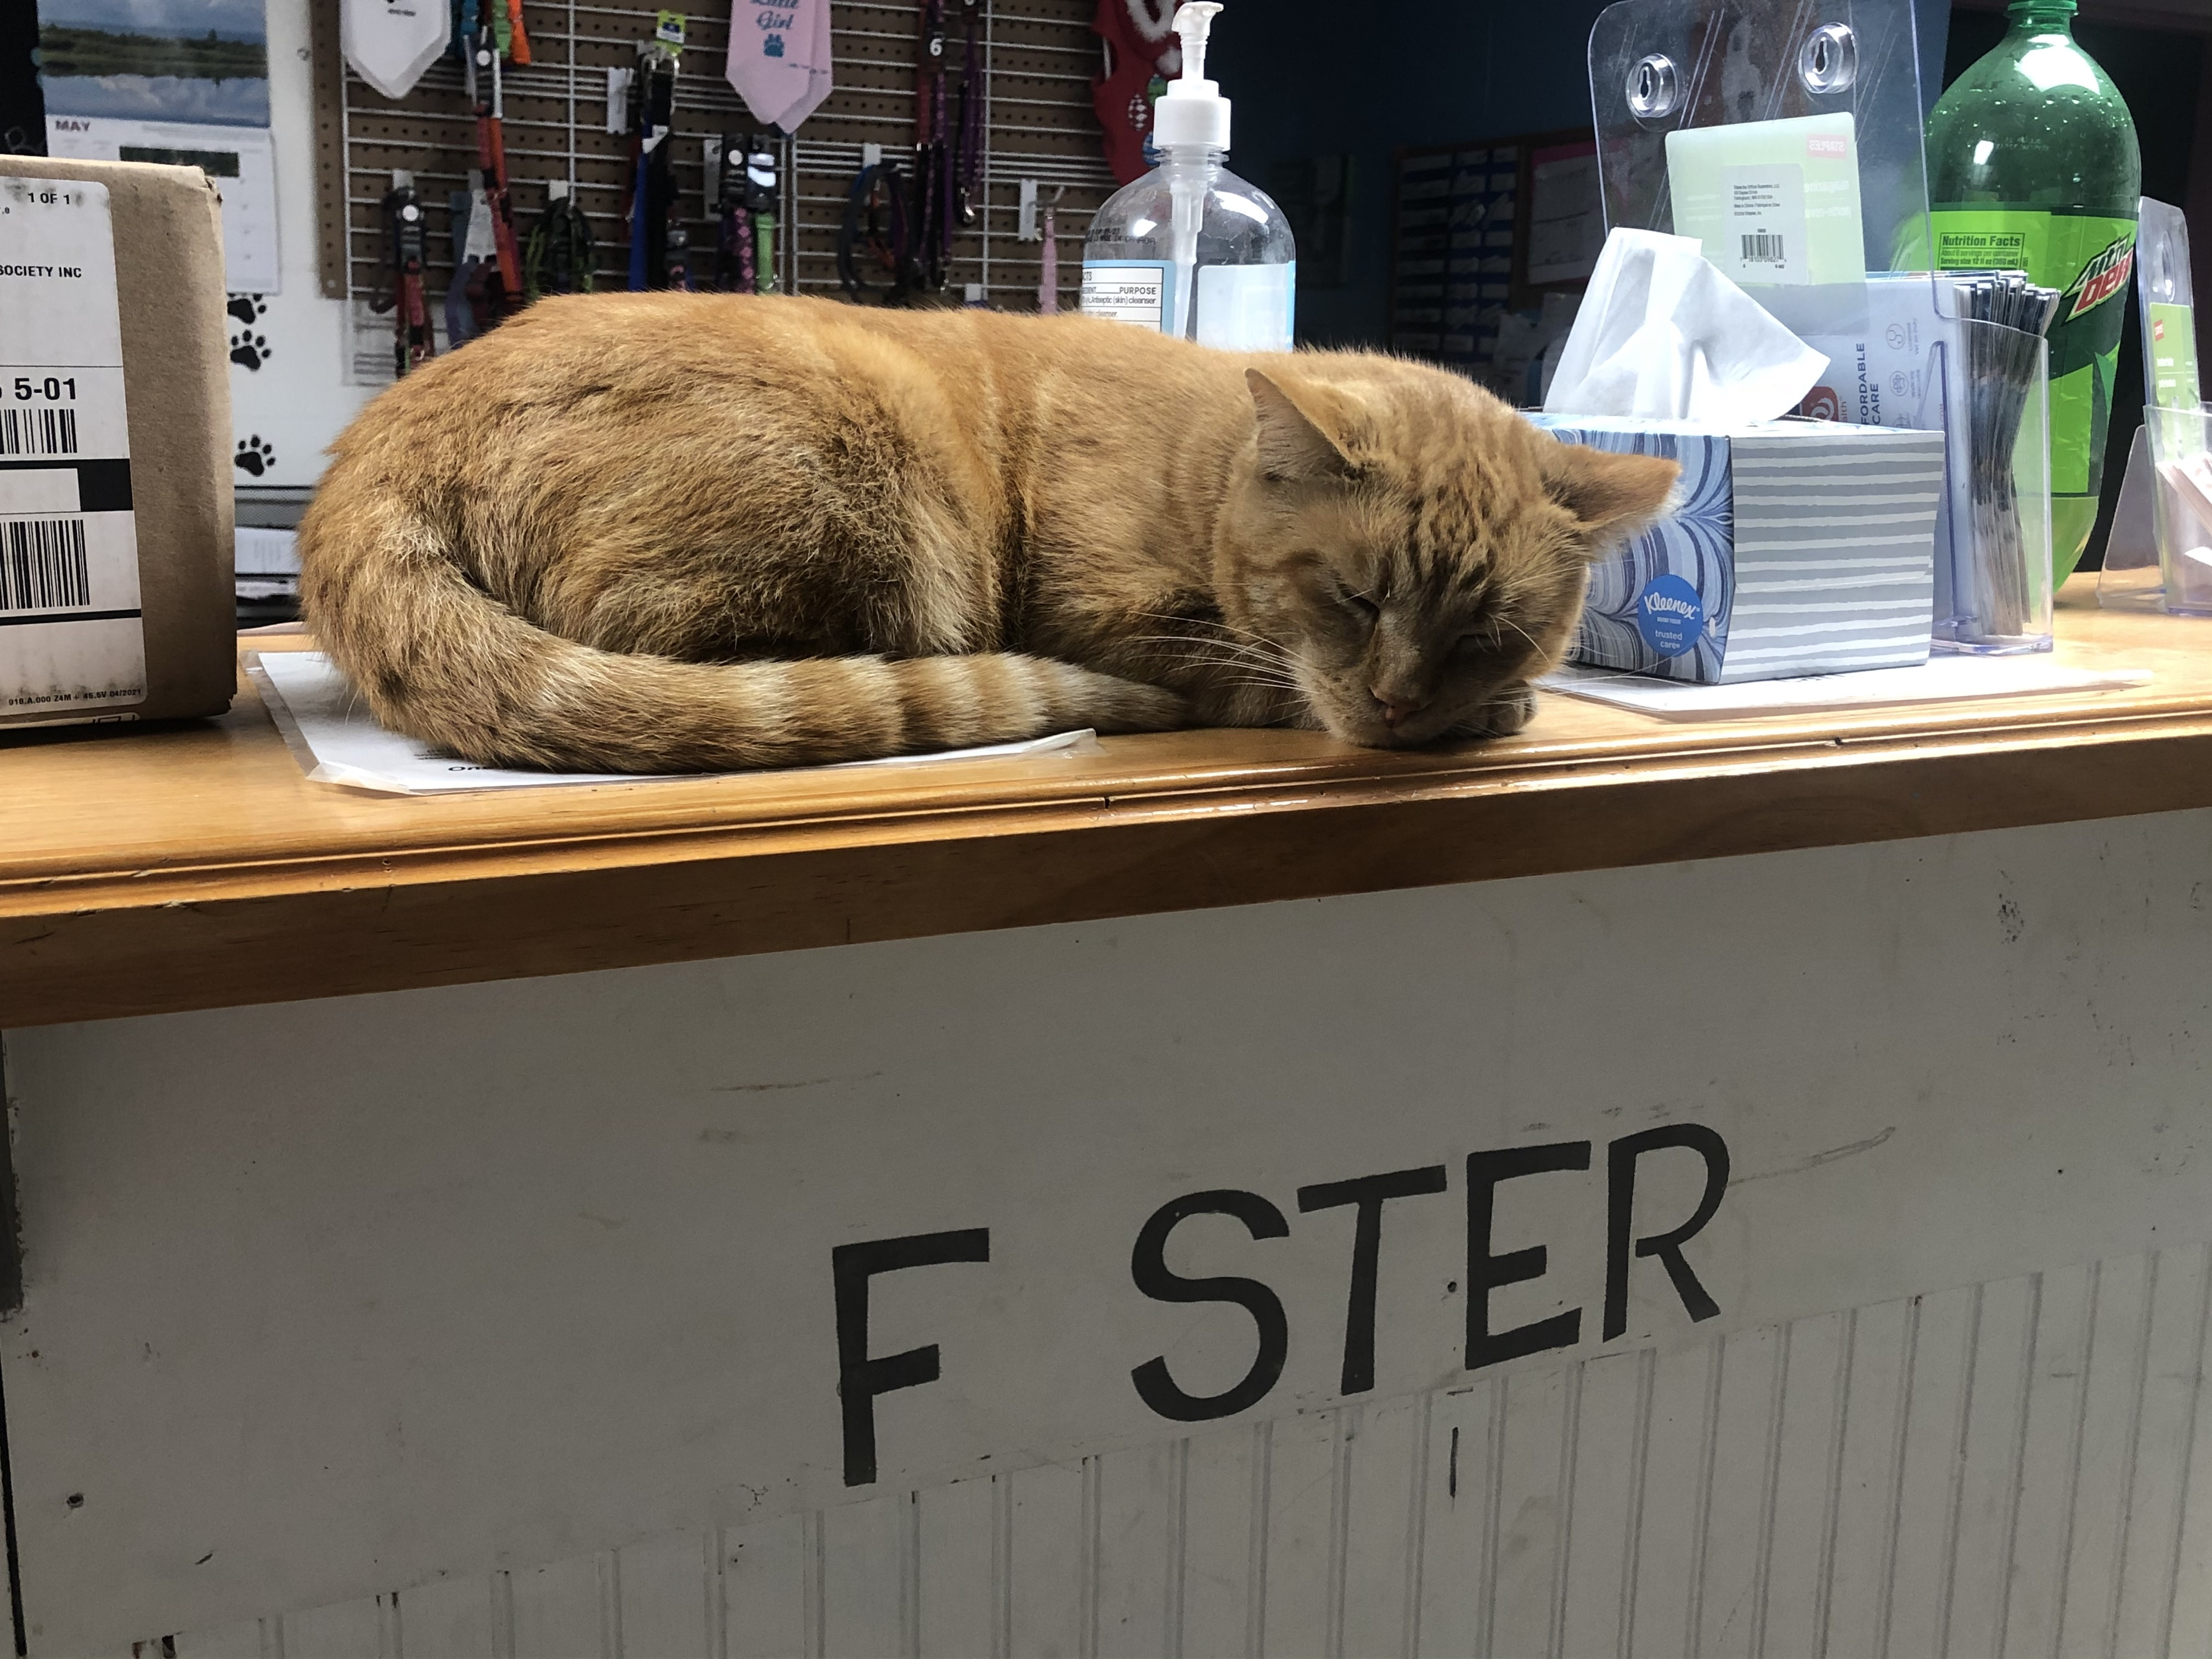 Foster with Cat